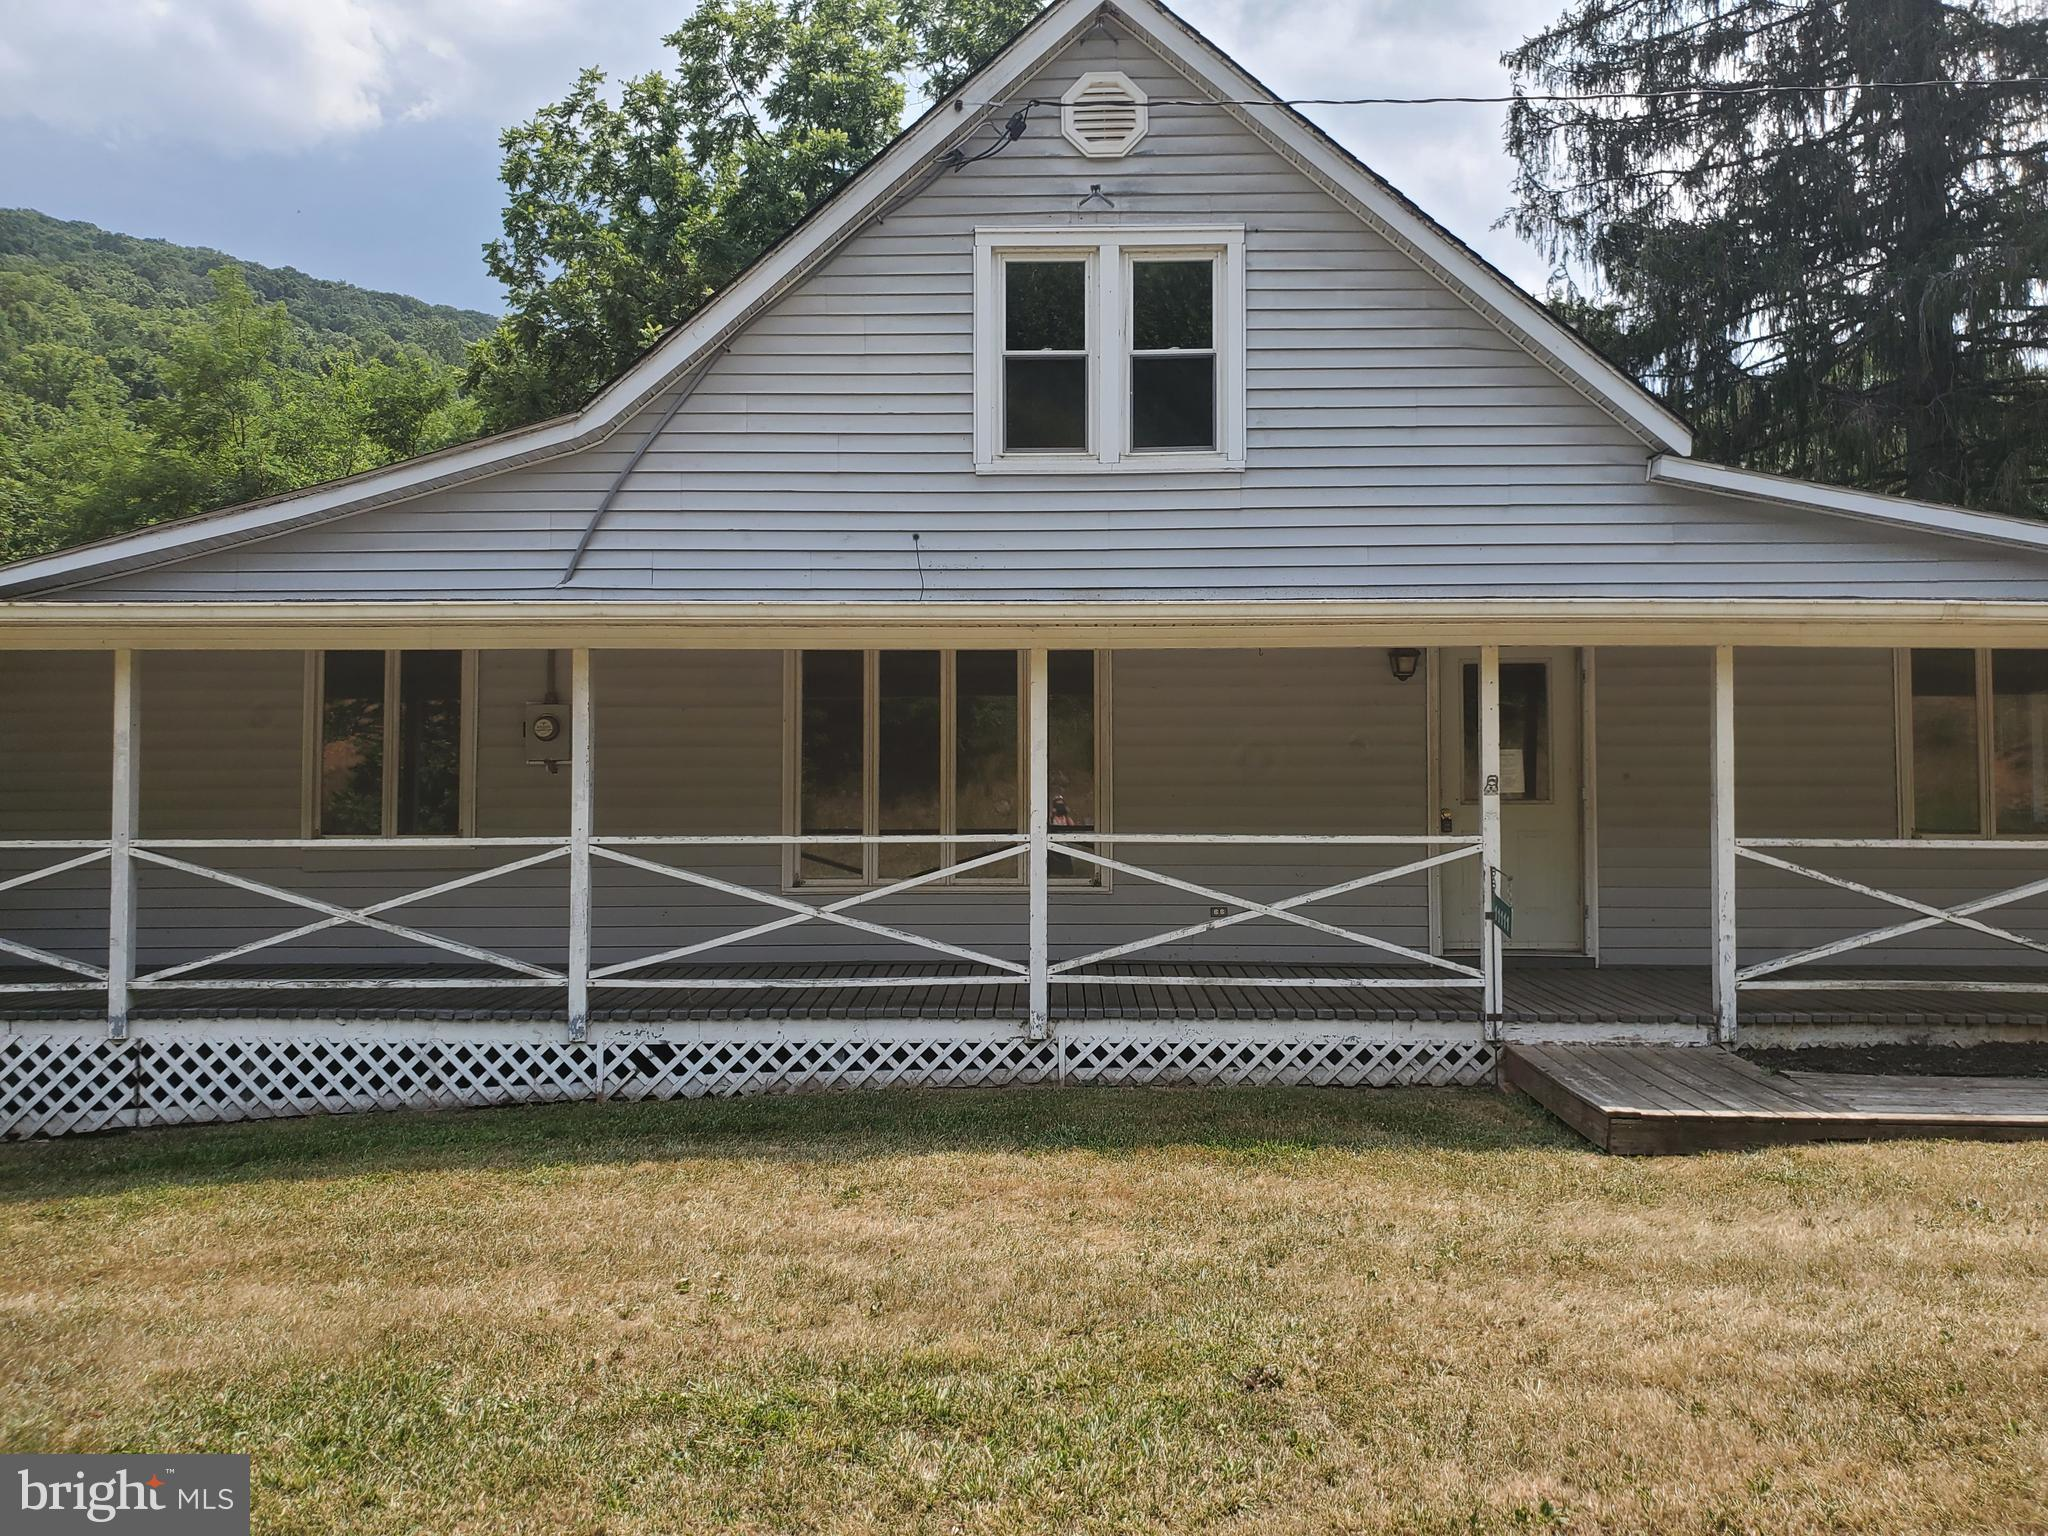 Price Reduced !  3 Bedroom 1 1/2 Bath Cape Cod style home located on Lunice Creek Highway. Property features Front porch and back yard has creek frontage.  Lots of potential